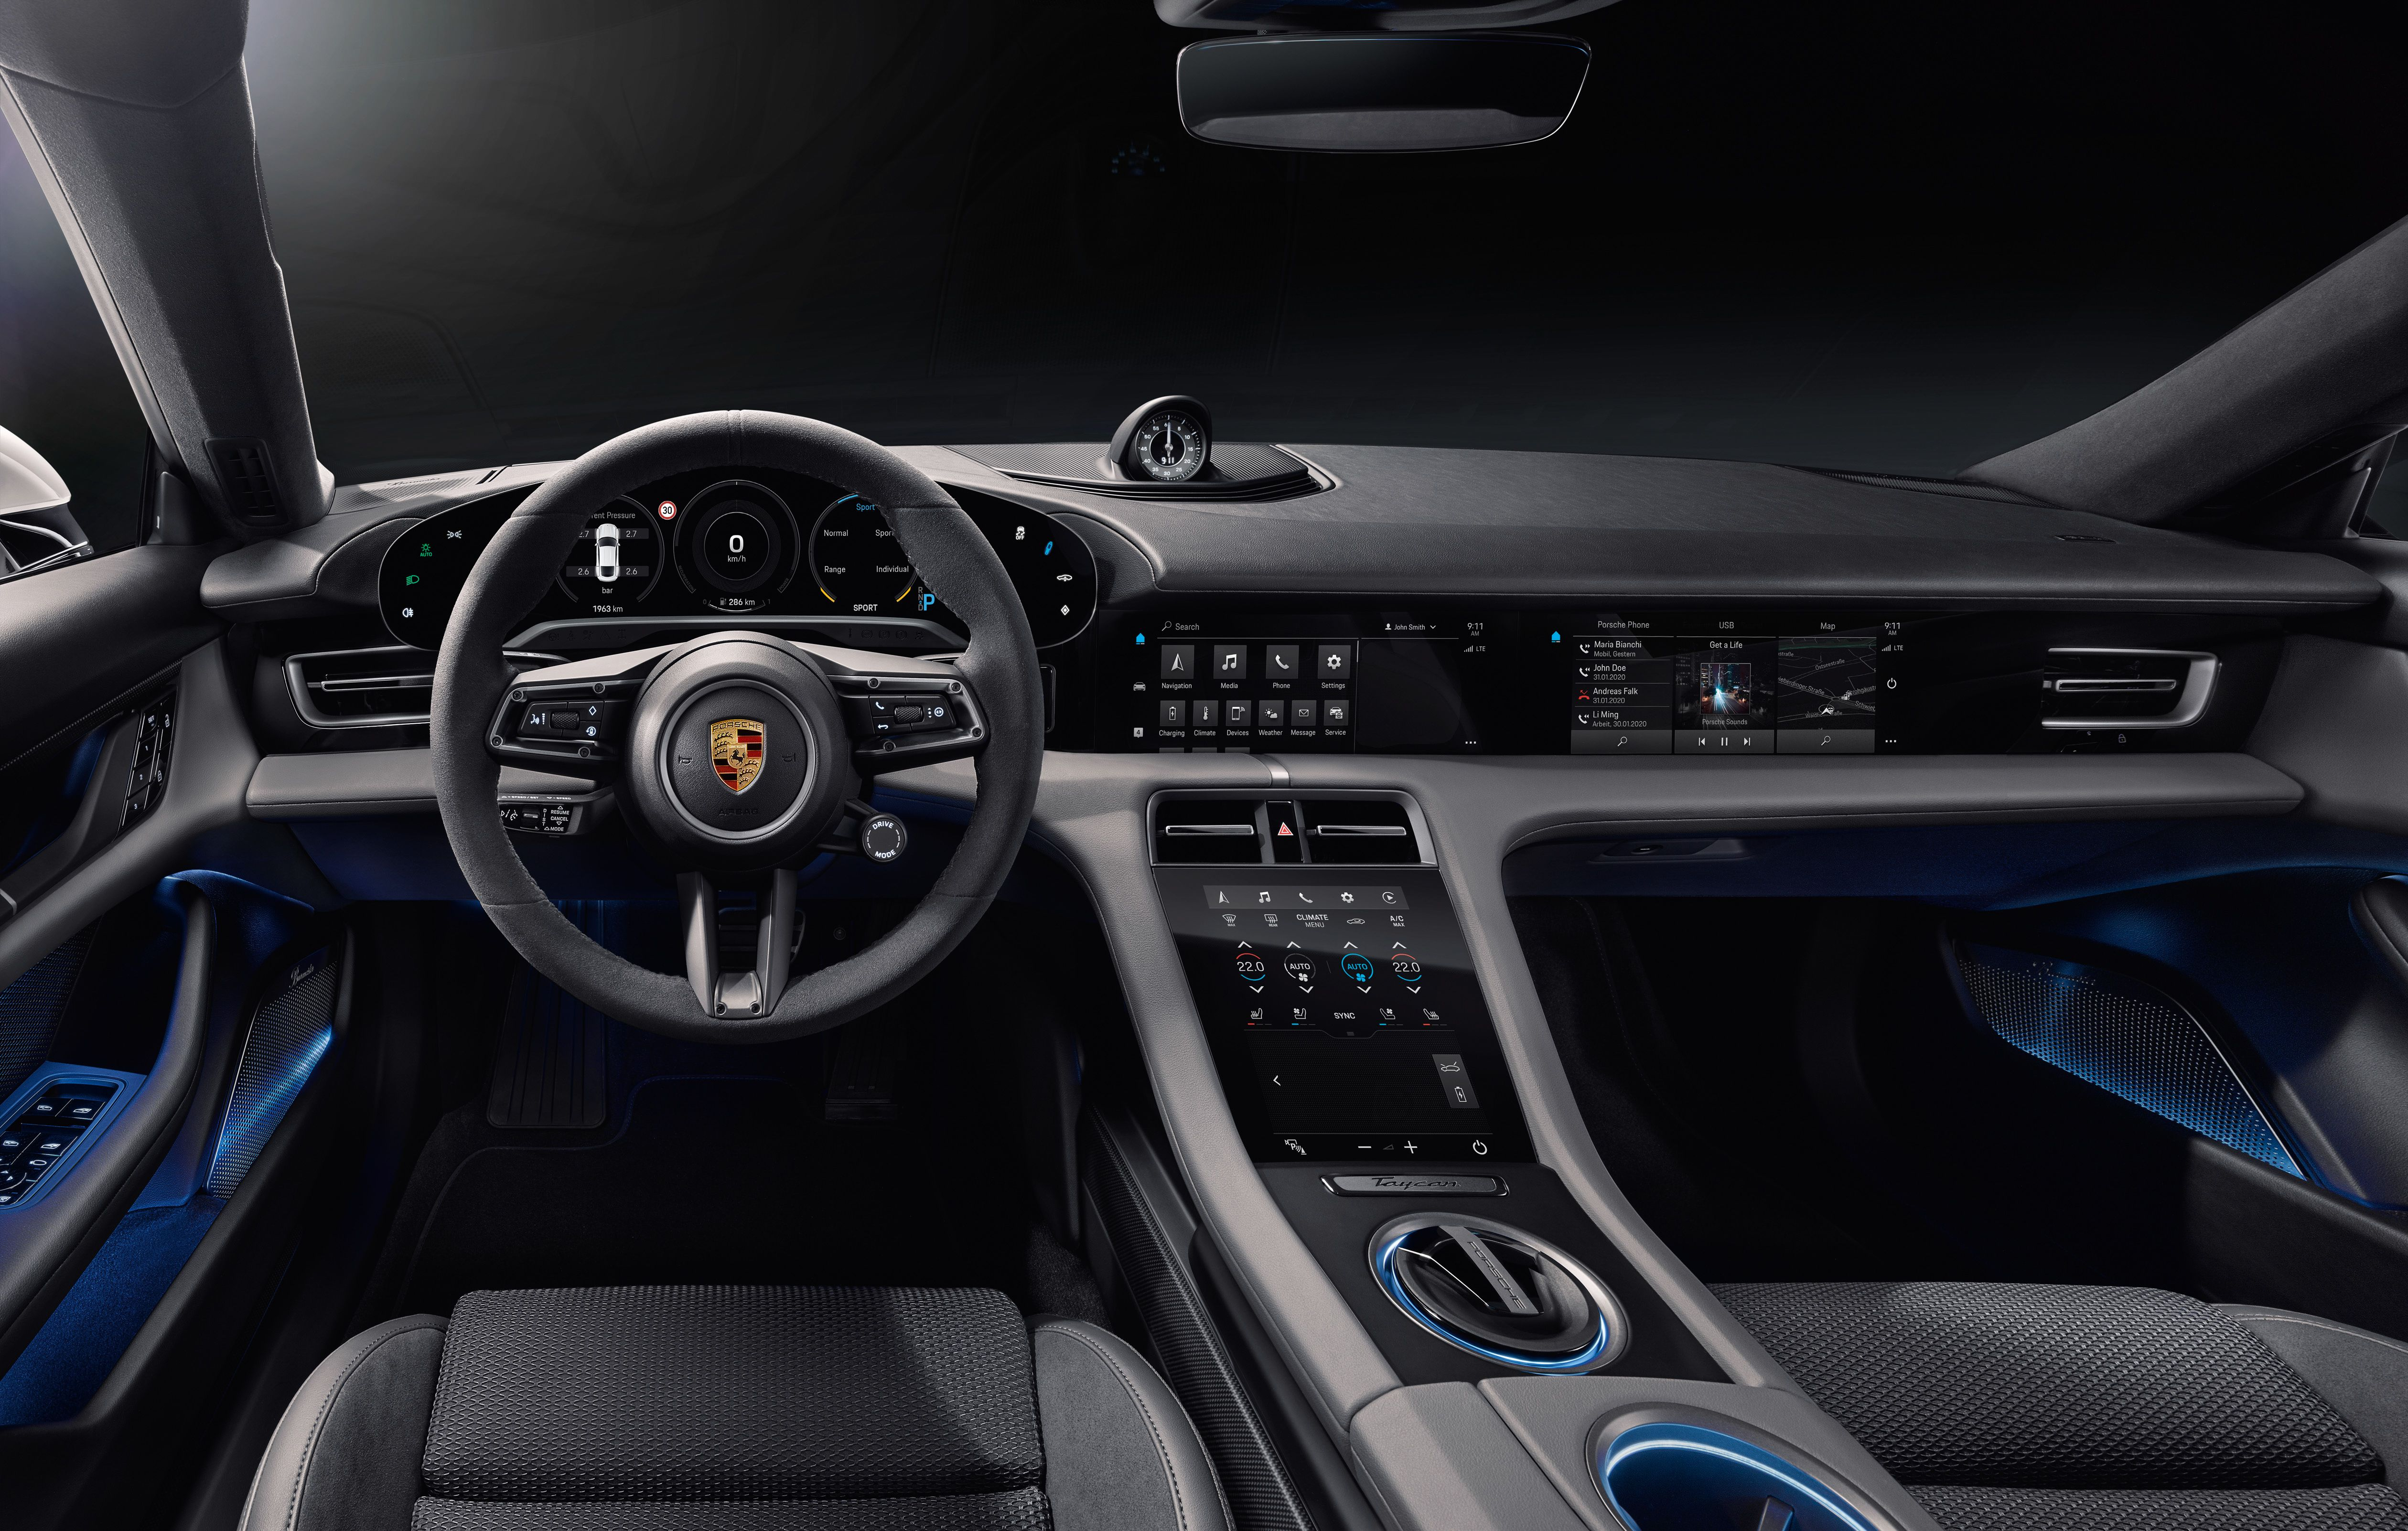 2020 Porsche Taycan EV Interior Revealed and Has Tons of Screens